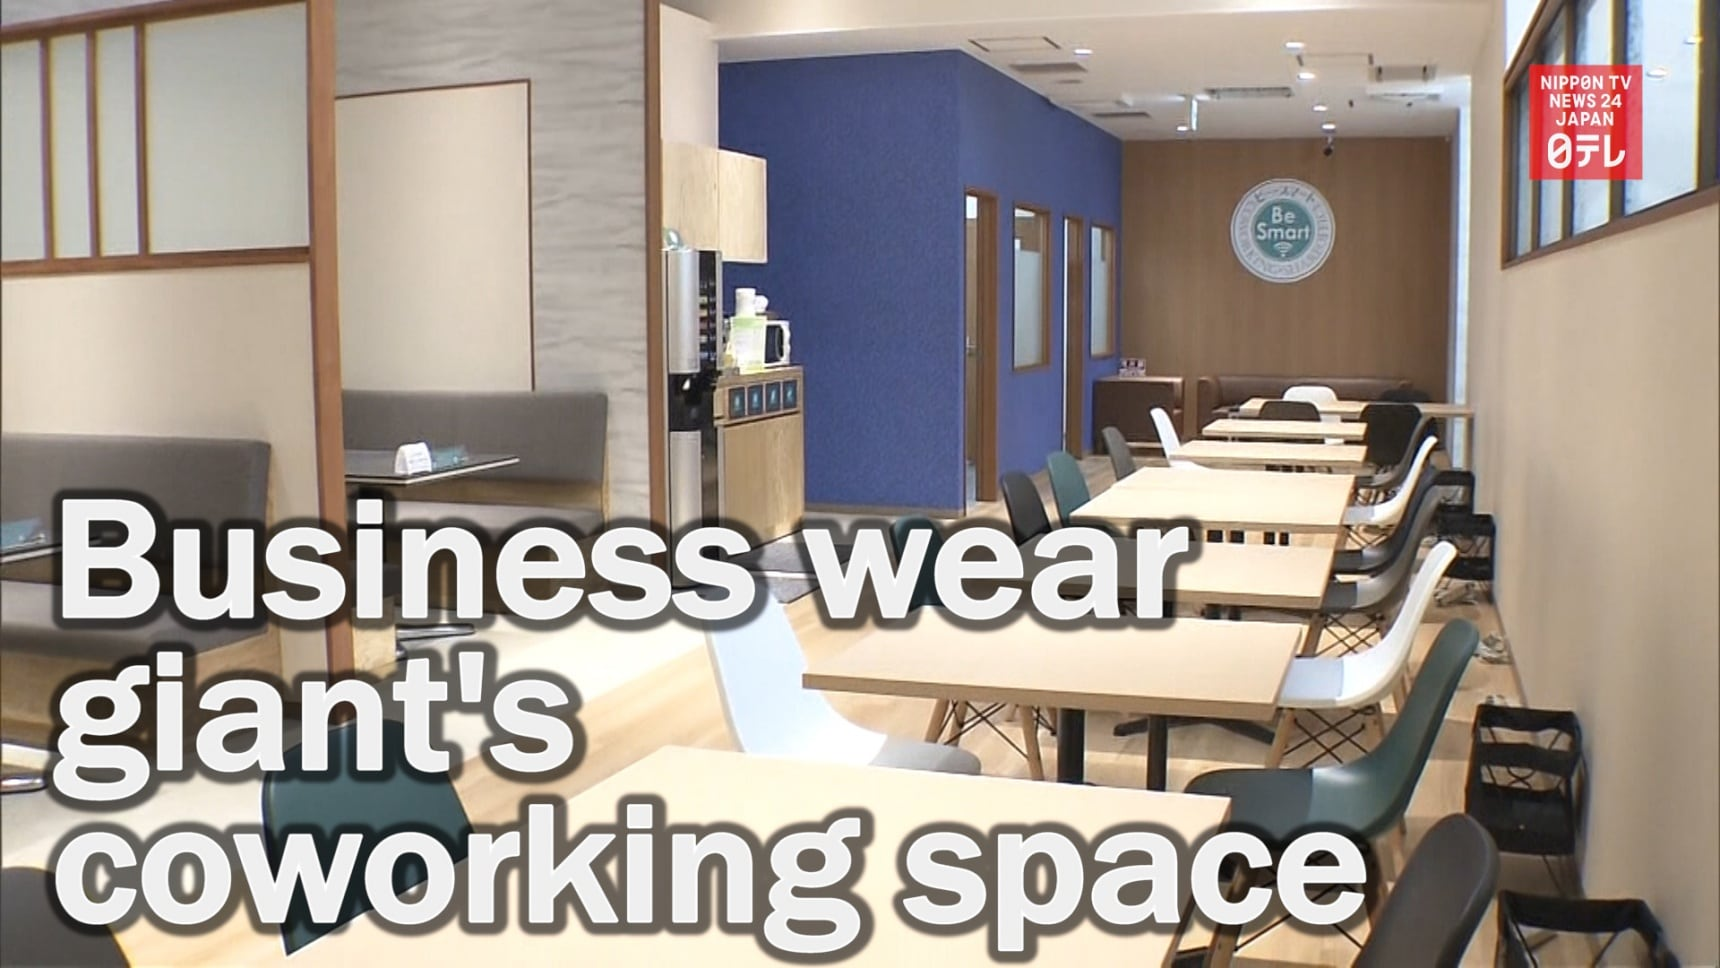 Business-wear Giant Opens Shared Office Spaces